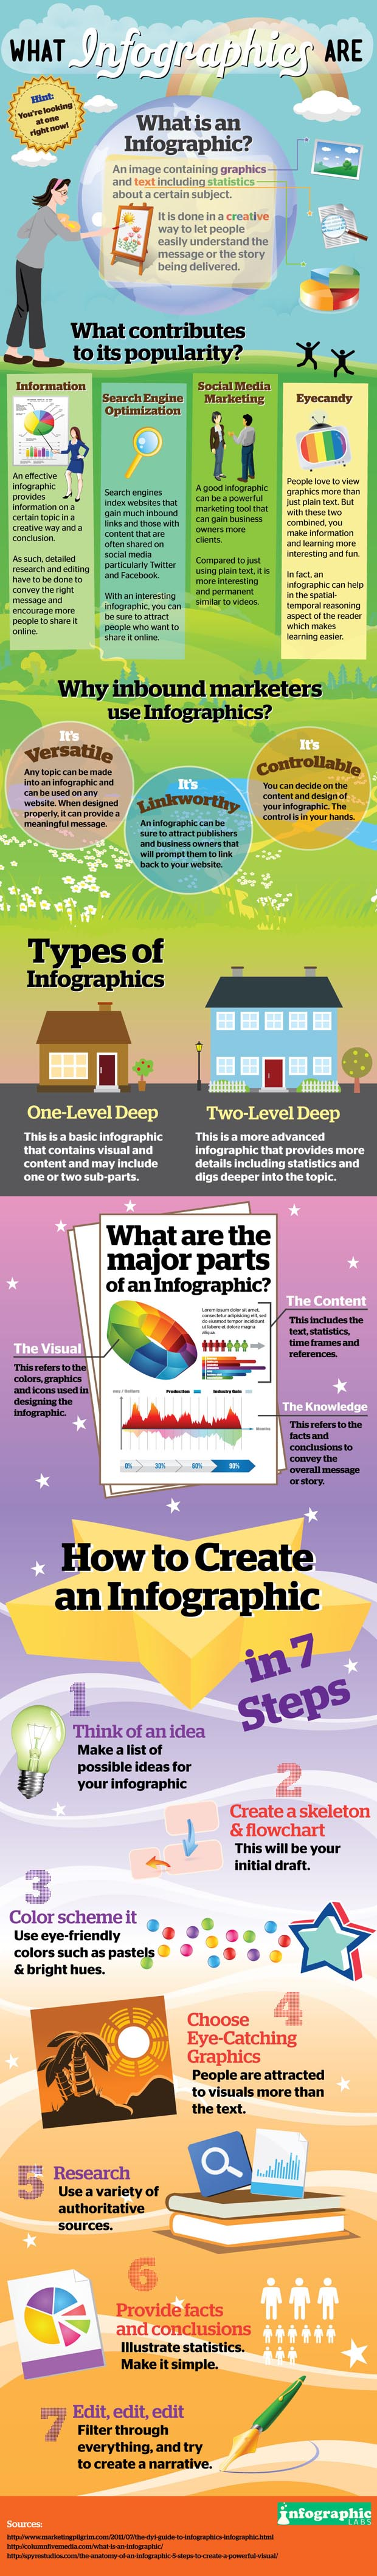 Best Infographic About Infographics How to Take Advantage